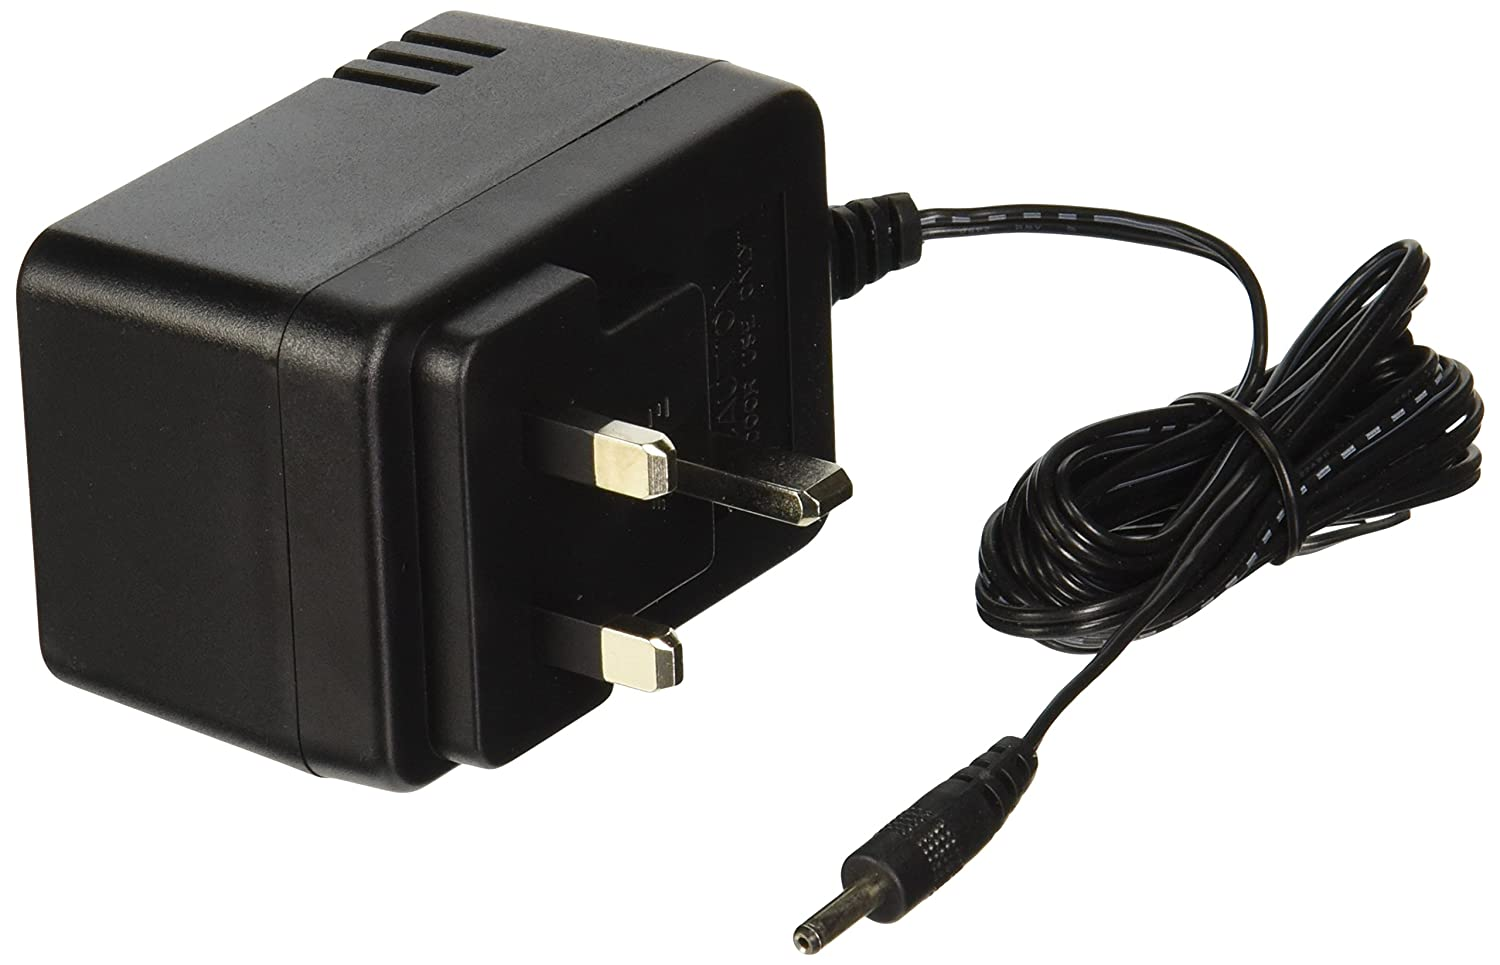 407780 and 407790 Extech 144240 AC Adaptor 240V For Models 407764